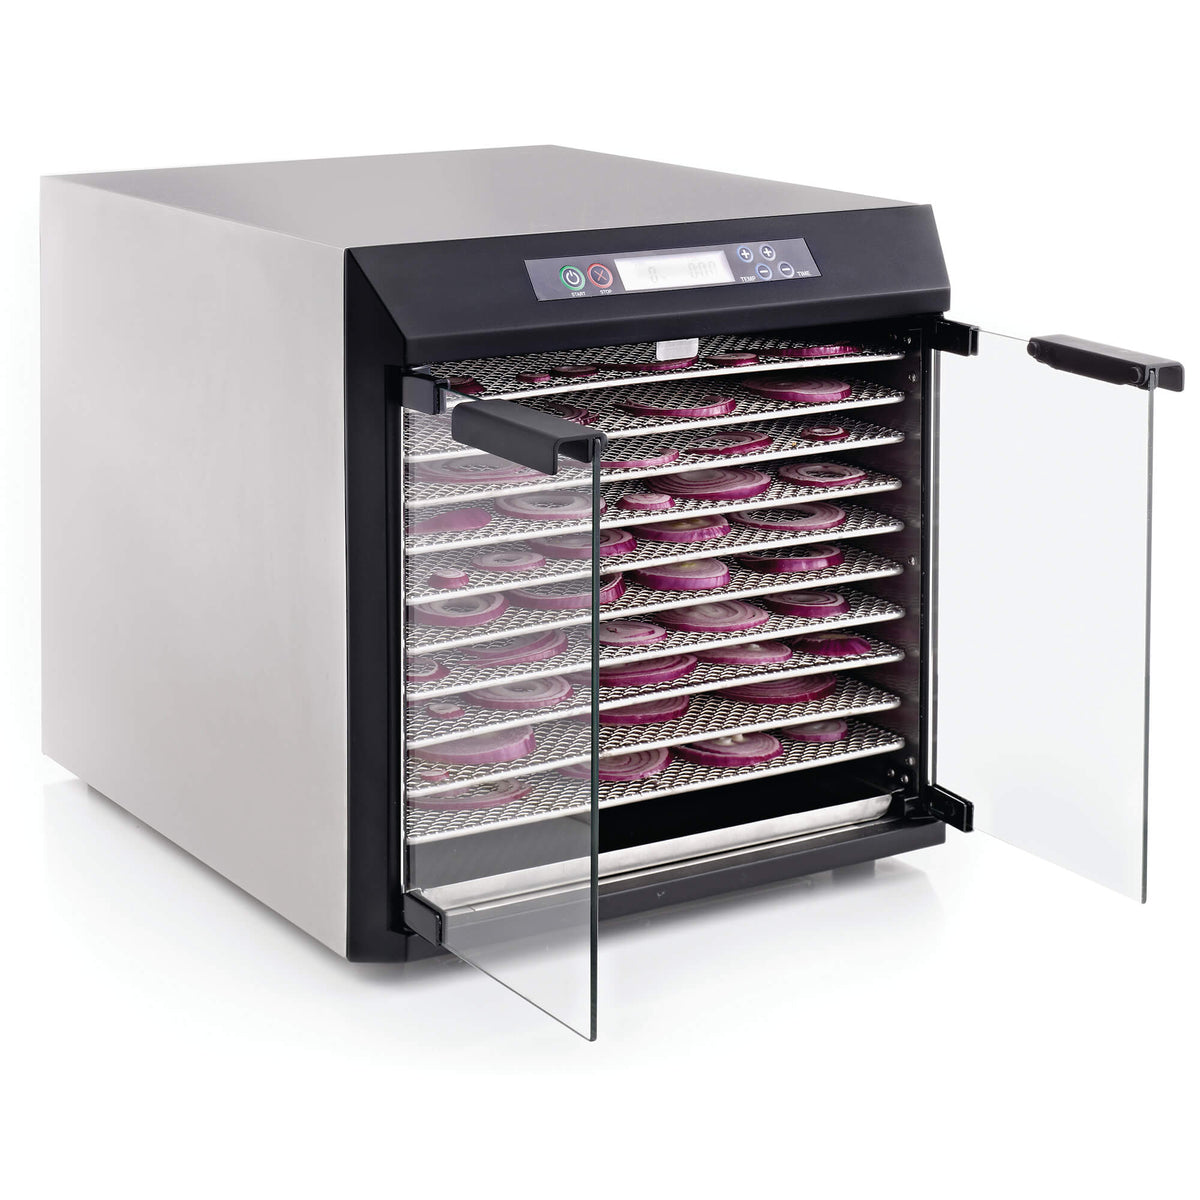 Excalibur EXC10EL 10 tray stainless steel digital dehydrator with glass armoured doors open and food on the trays.